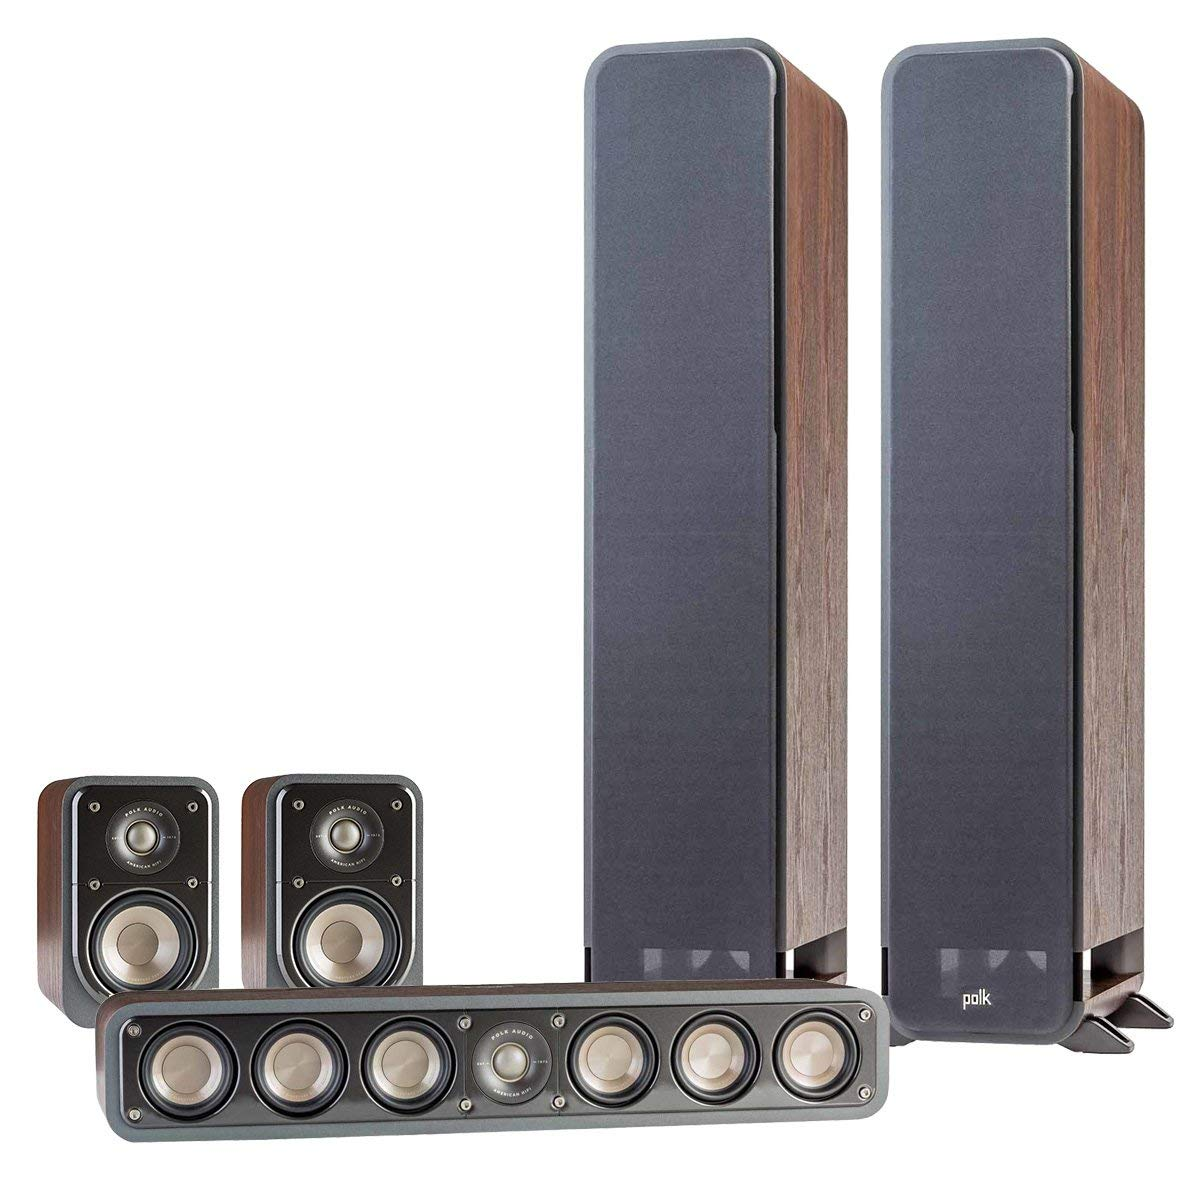 Polk Audio 5.0 Signature Series S60 Home Theater Package with S20 Bookshelf Speakers and S35 Slim Center Speaker (Classic Brown Walnut)